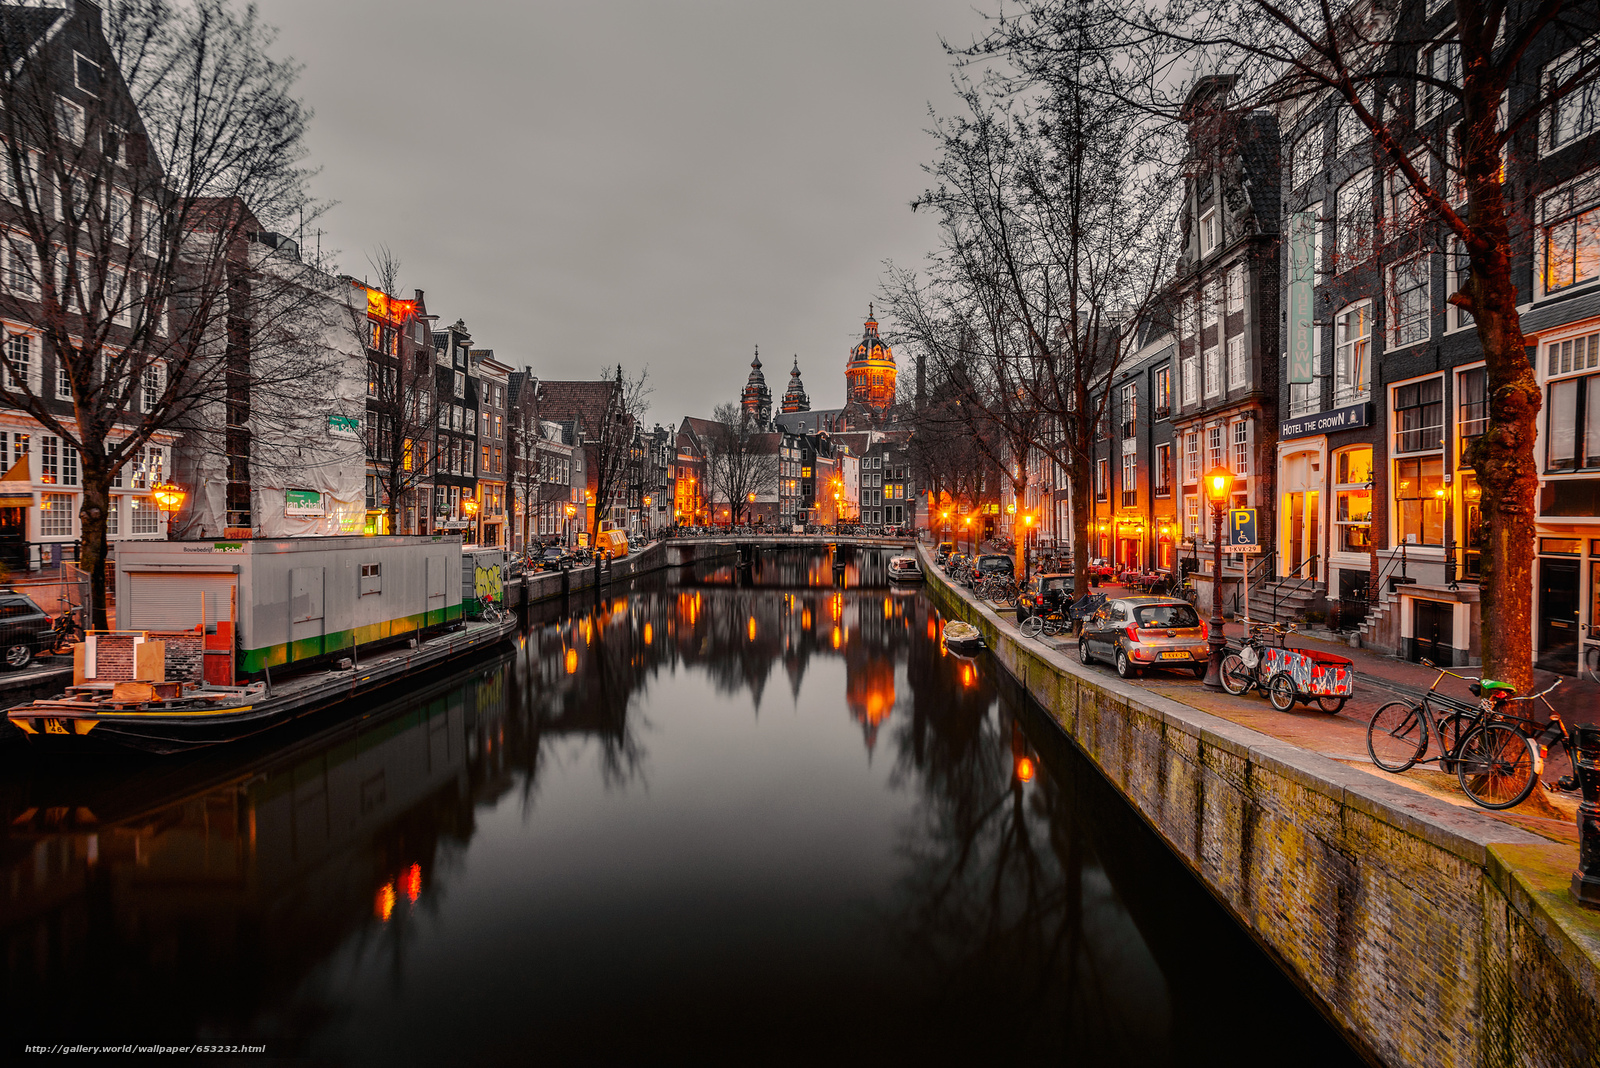 cit in the netherlands Dutch cities are riddled with terrorist cells and crowded with fundamentalist muslims who cheered 9/11 and idolize osama bin laden, but for terpstra and his political allies, the real problem was the one member of parliament who wouldn't shut up.